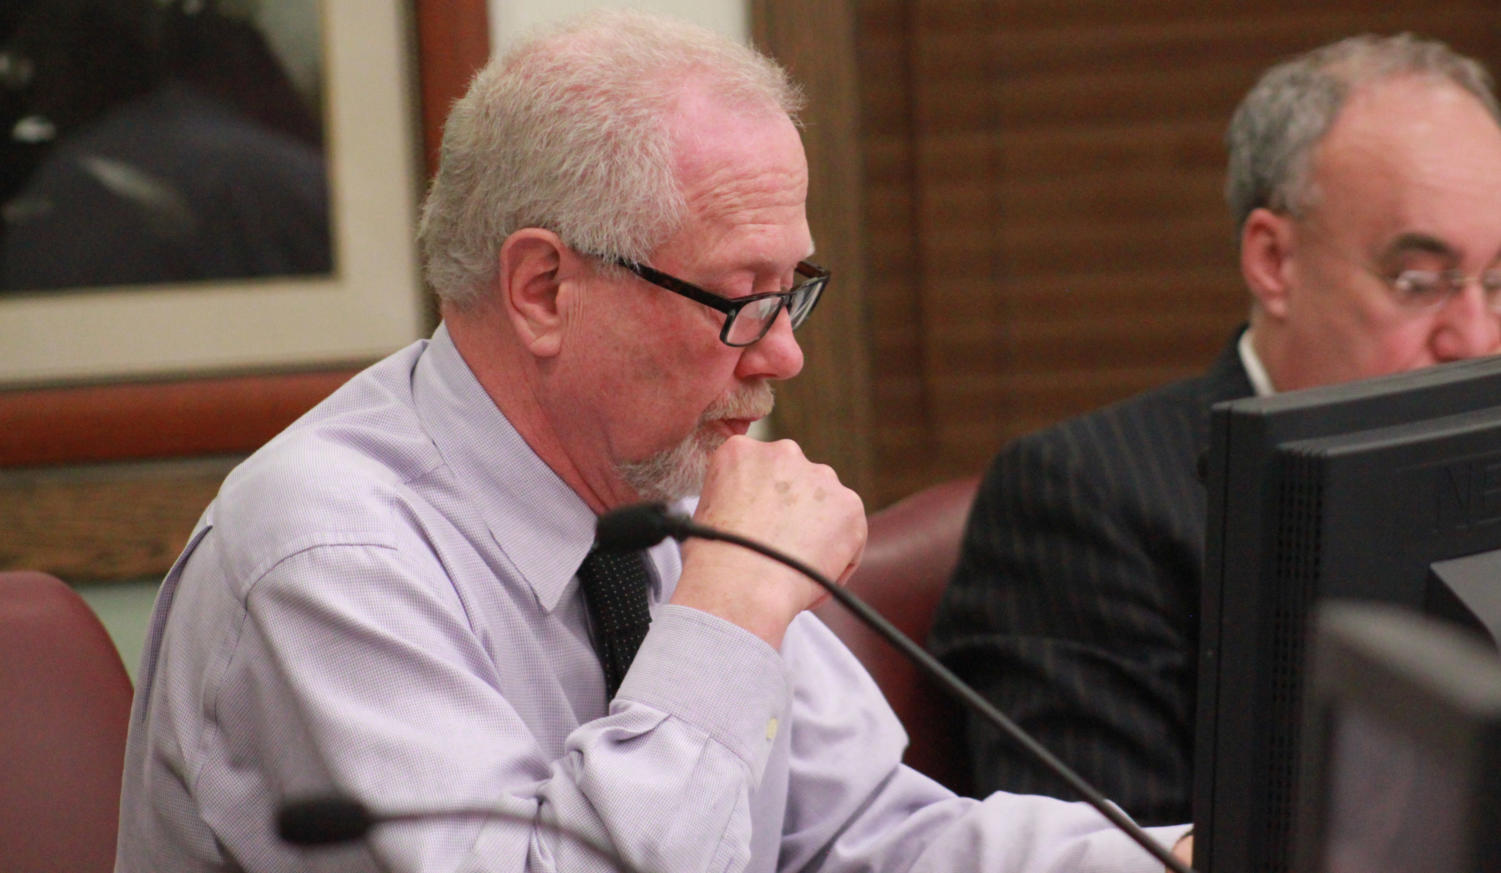 City Administrator Dean Torreson informs the council  in Monday's meeting that pensions contribute cloes to $1 million which is extremely detrimental to the city's budget and deficit reduction plan.